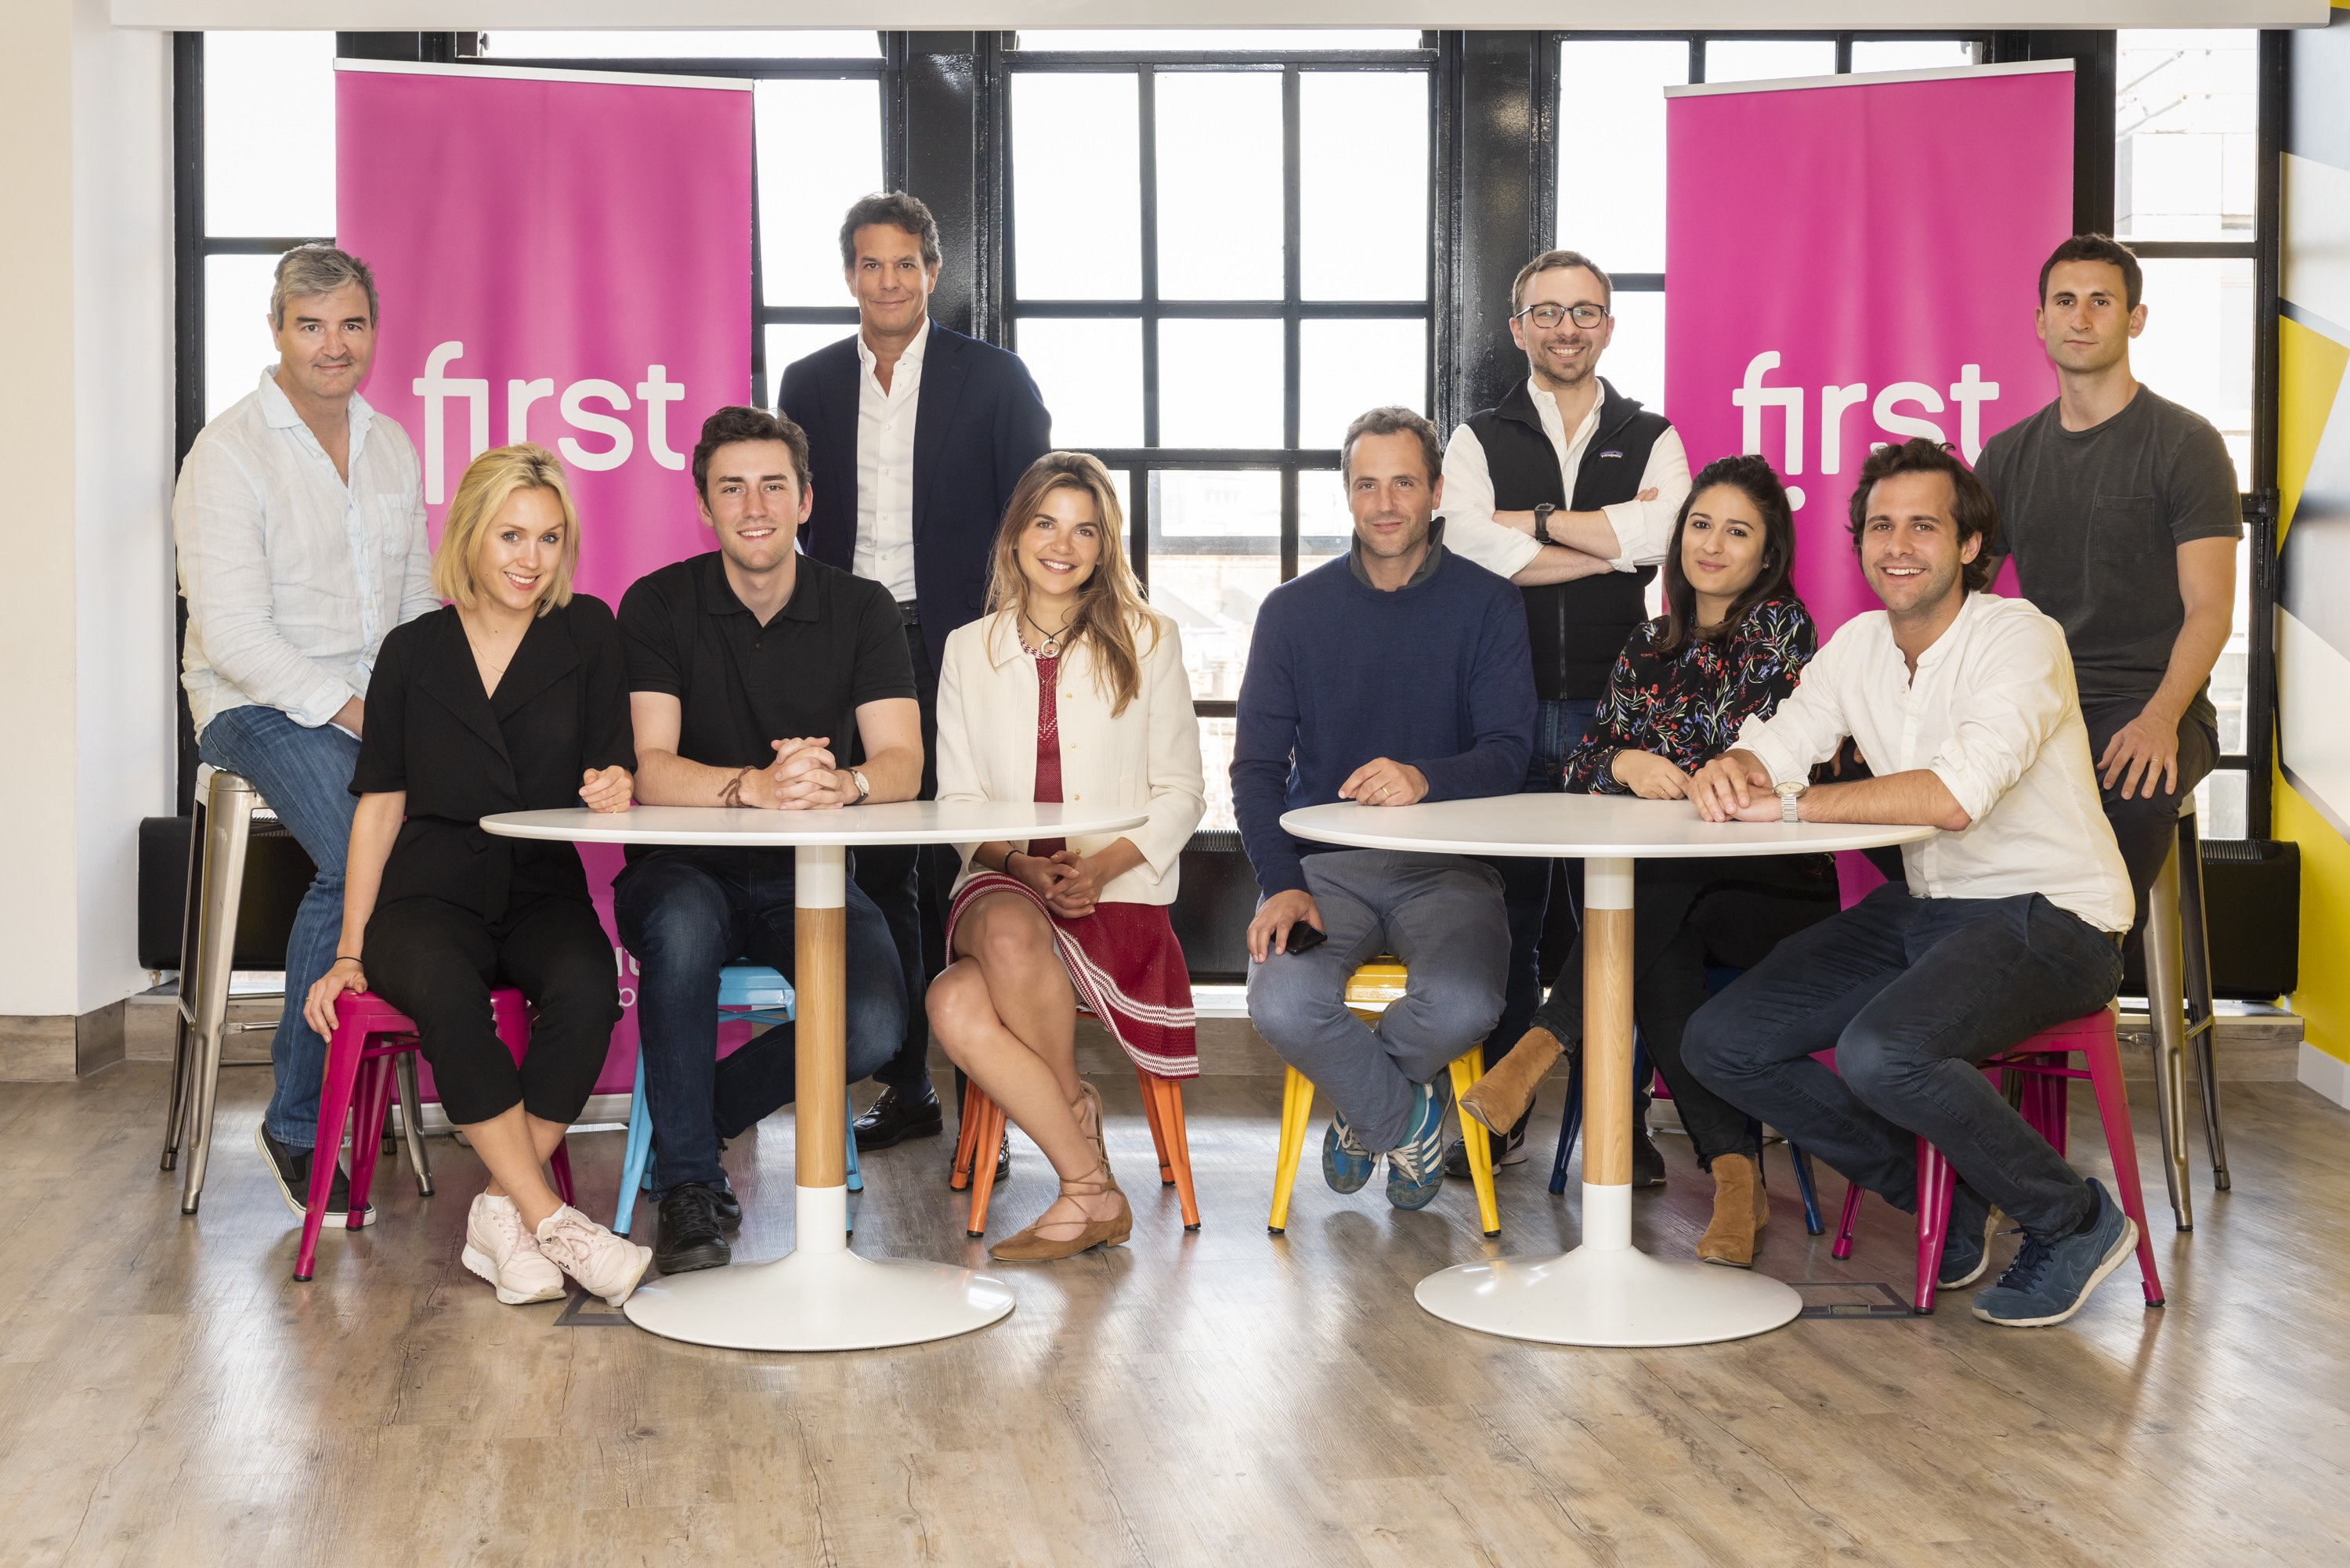 Pan-European seed fund firstminute hits a final fund close of $100M